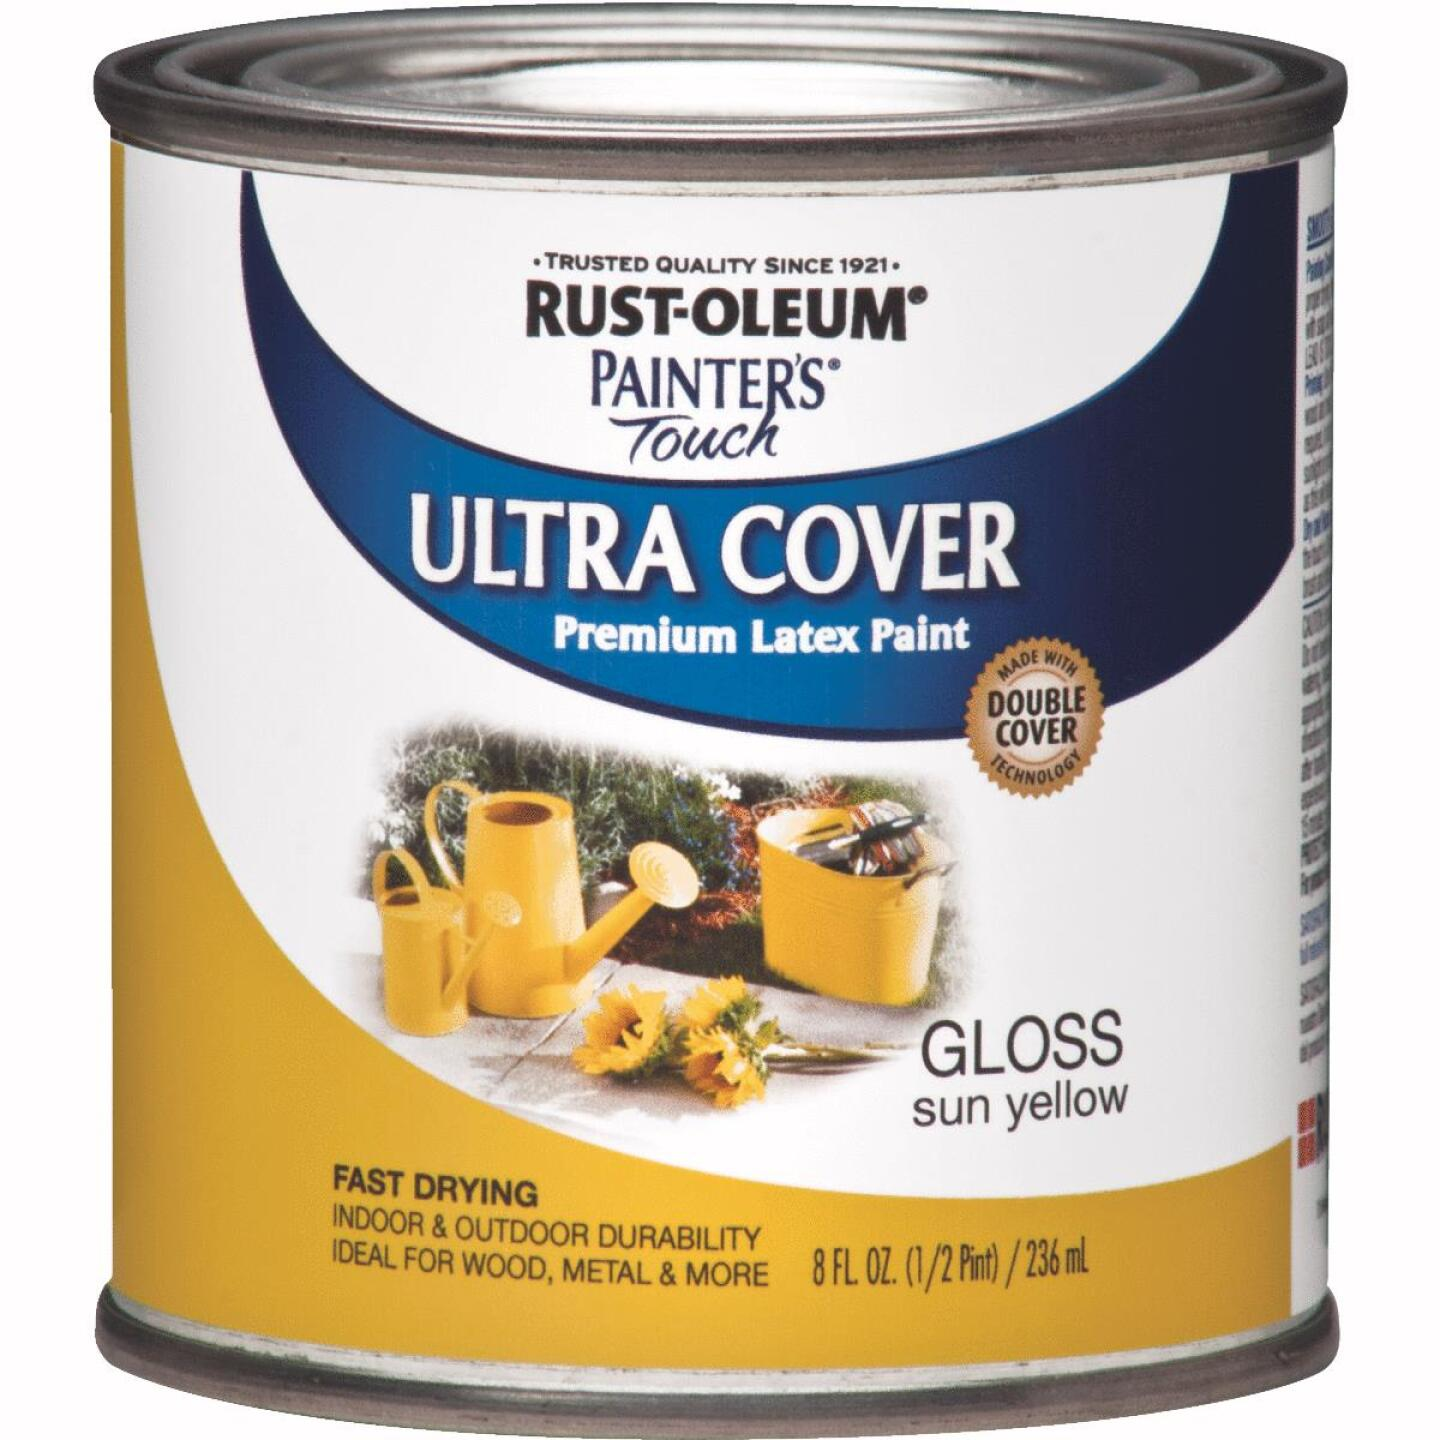 Rust-Oleum Painter's Touch 2X Ultra Cover Premium Latex Paint, Sun Yellow, 1/2 Pt. Image 1